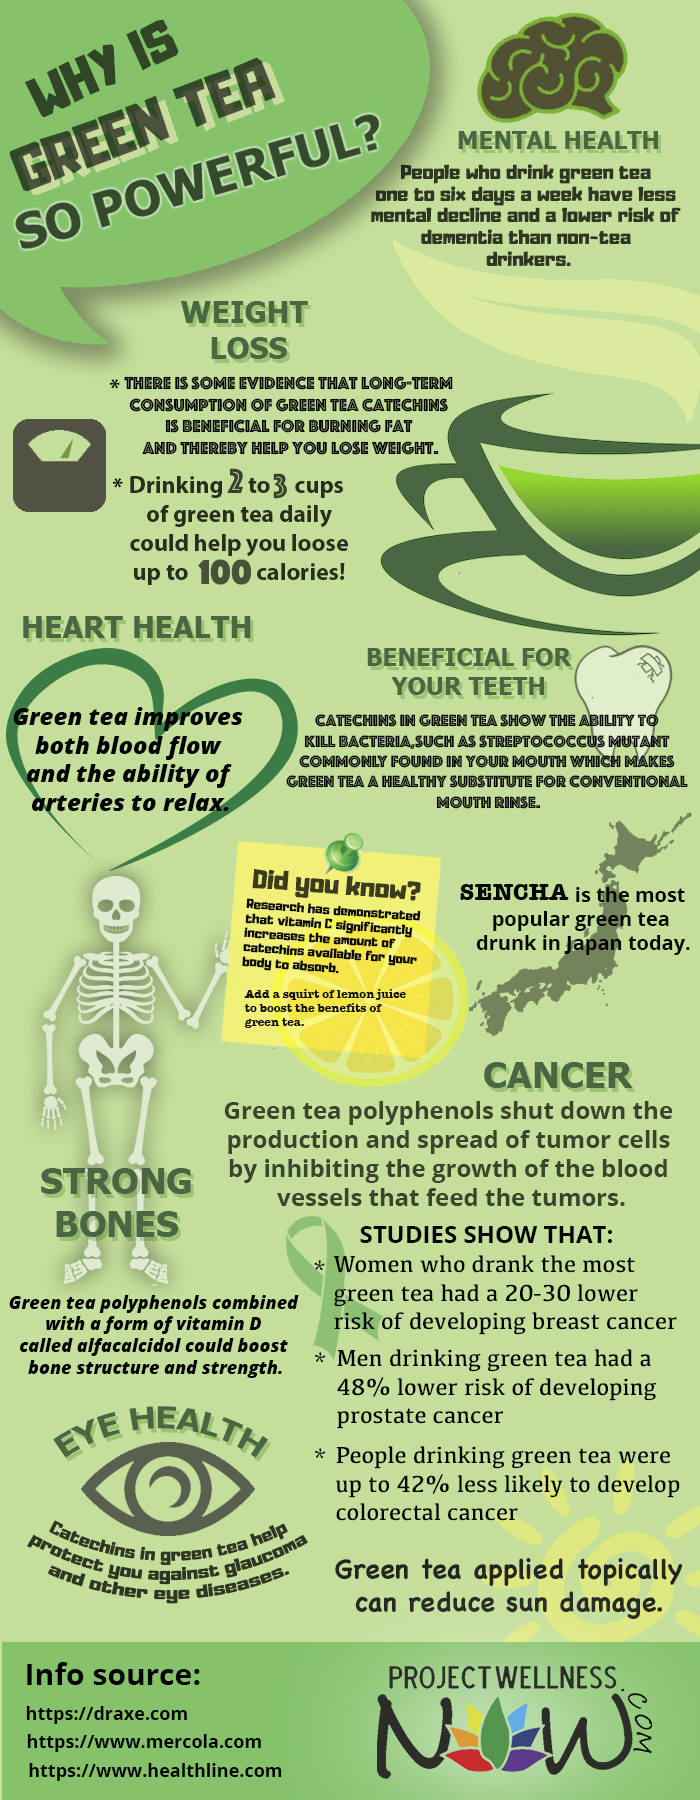 Why is Green Tea Considered the New Power Drink? - Infographic